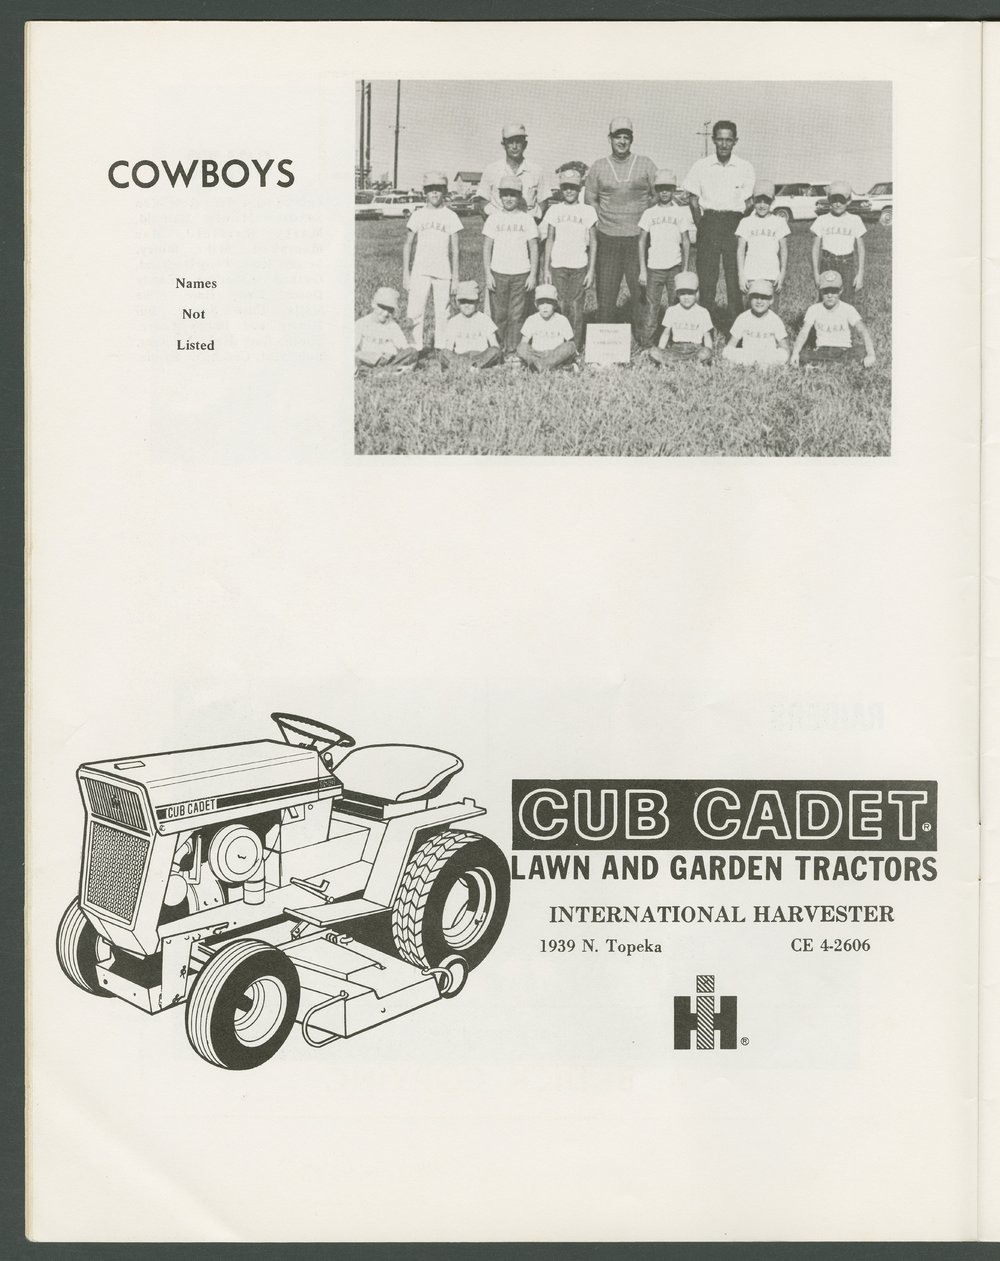 1969 SCABA baseball yearbook, Topeka, Kansas - 10